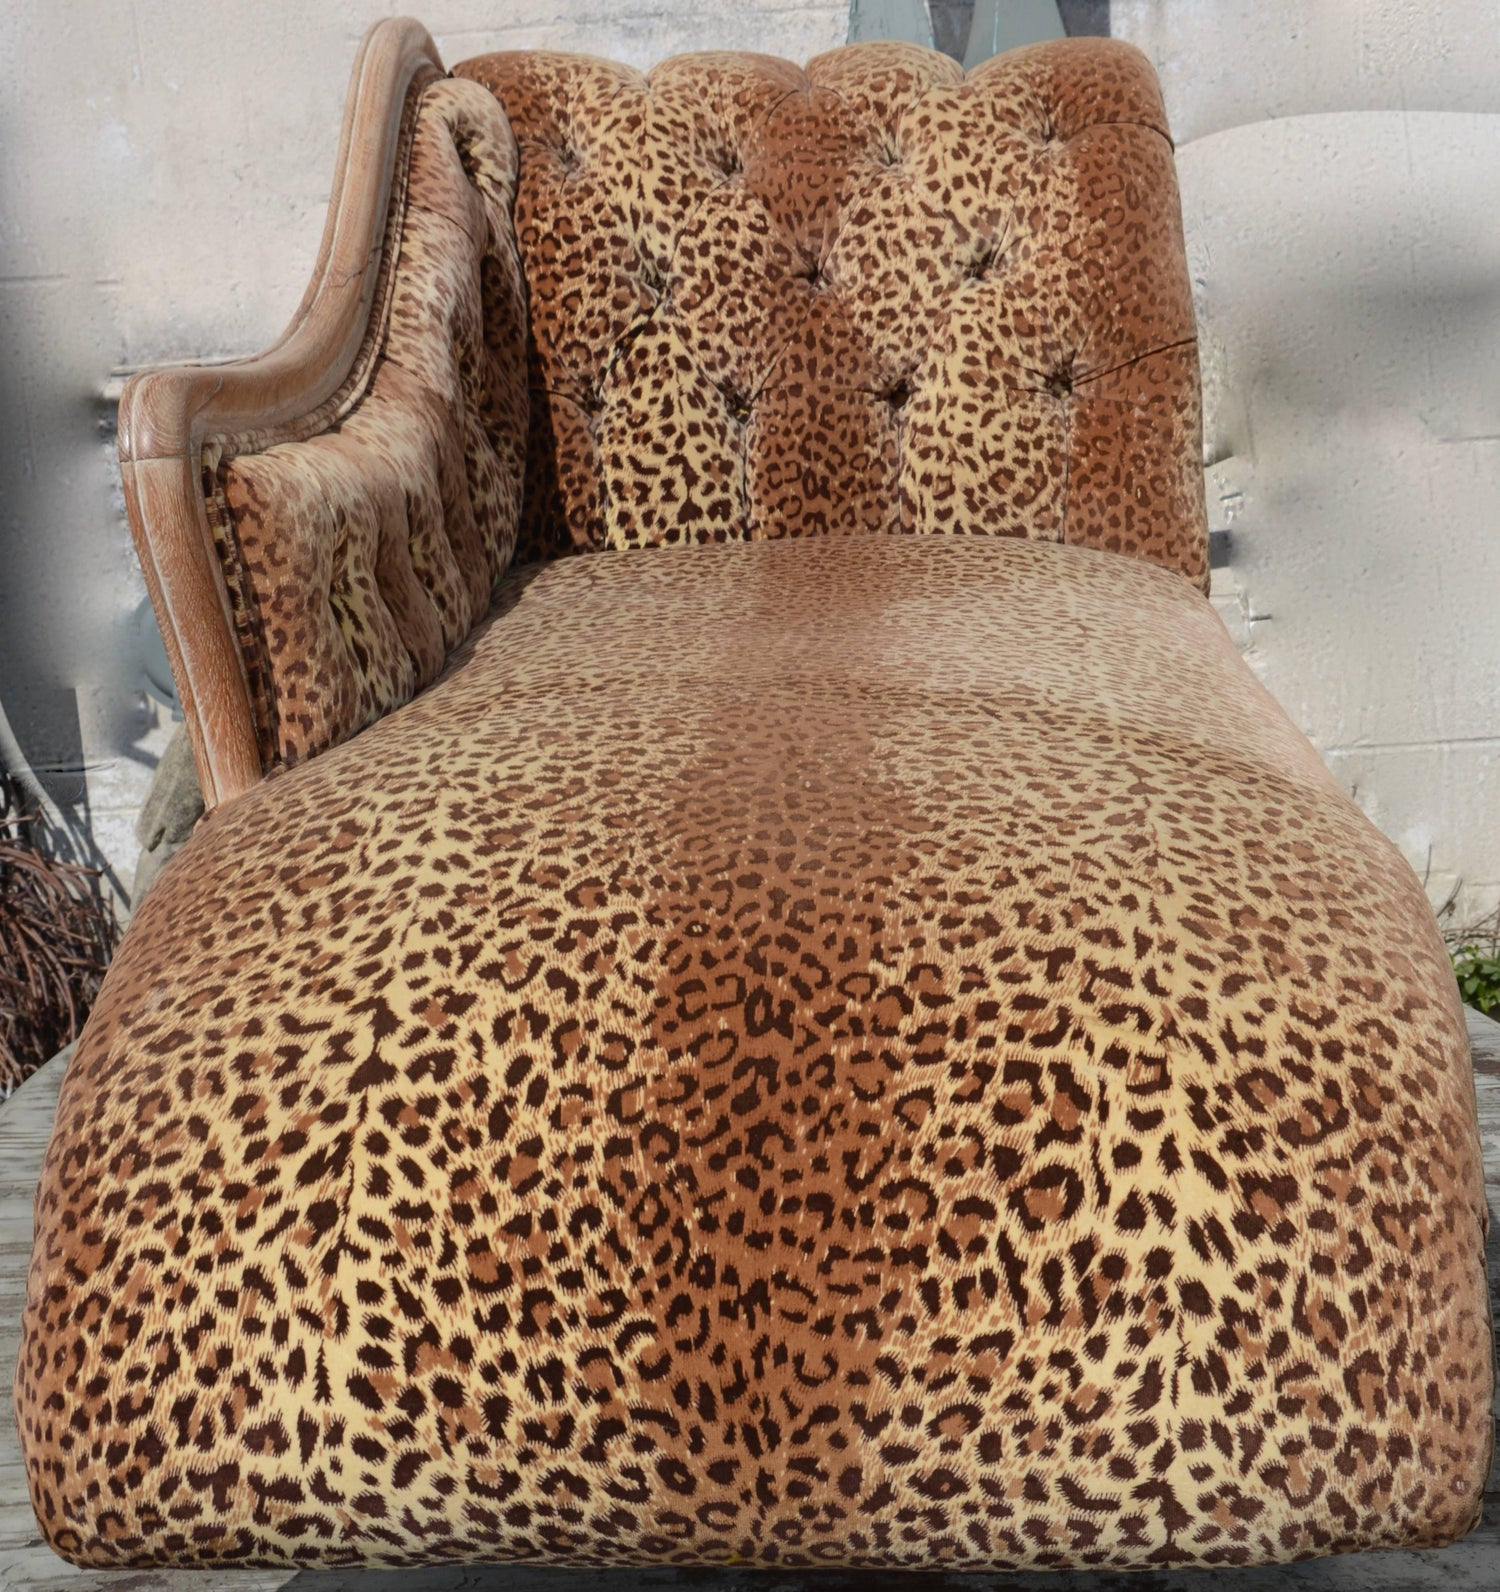 for sale animal vintage chair sofa full leopard indoor wonderful chaise lounge couches size print